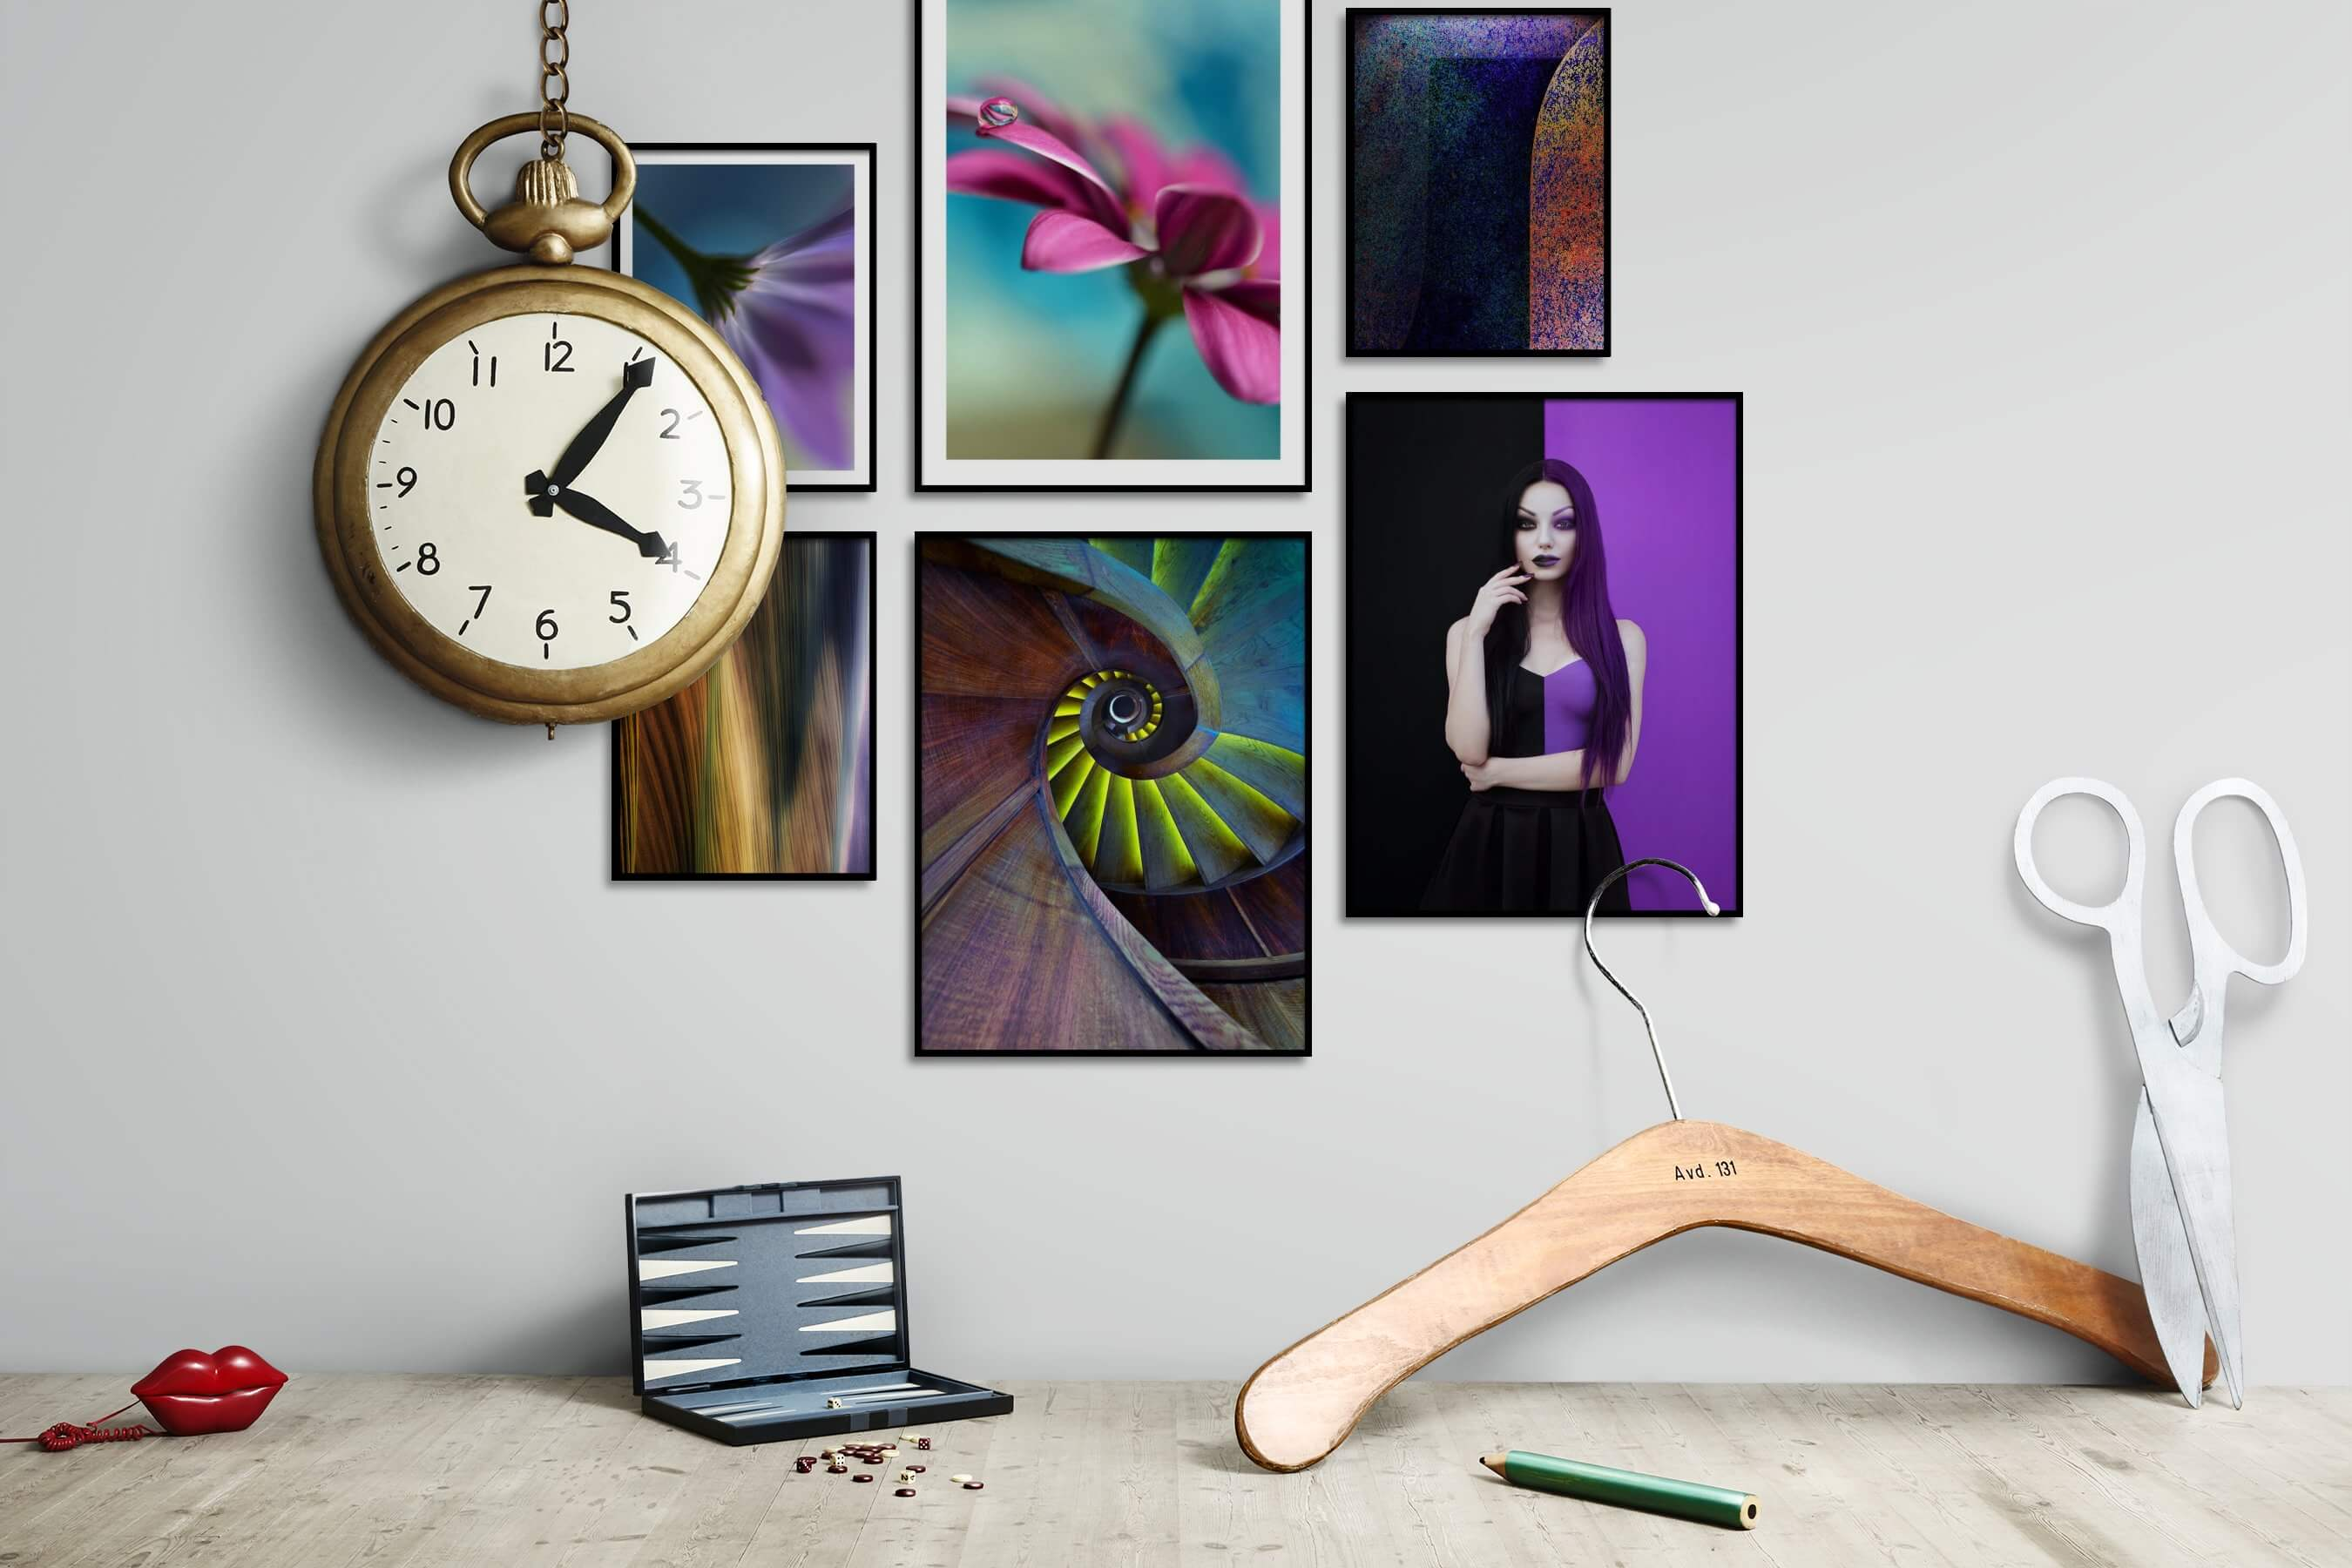 Gallery wall idea with six framed pictures arranged on a wall depicting For the Moderate, Flowers & Plants, For the Maximalist, Country Life, Colorful, and Fashion & Beauty